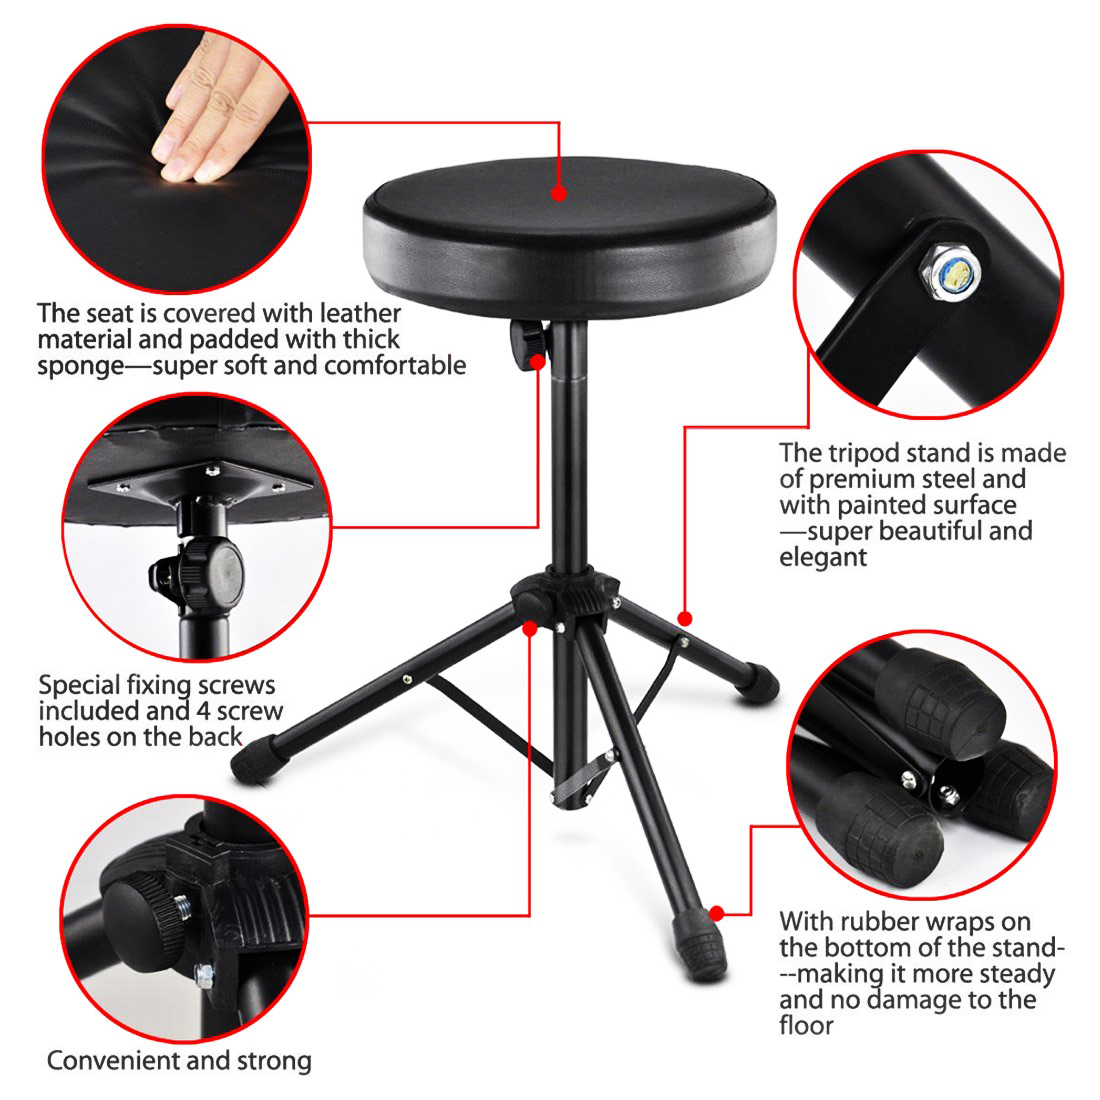 ... Foldable Drum Stool Throne Chair Seat Music Piano Keyboard ...  sc 1 st  Oypla & Foldable Drum Stool Throne Chair Seat Music Piano Keyboard ... islam-shia.org